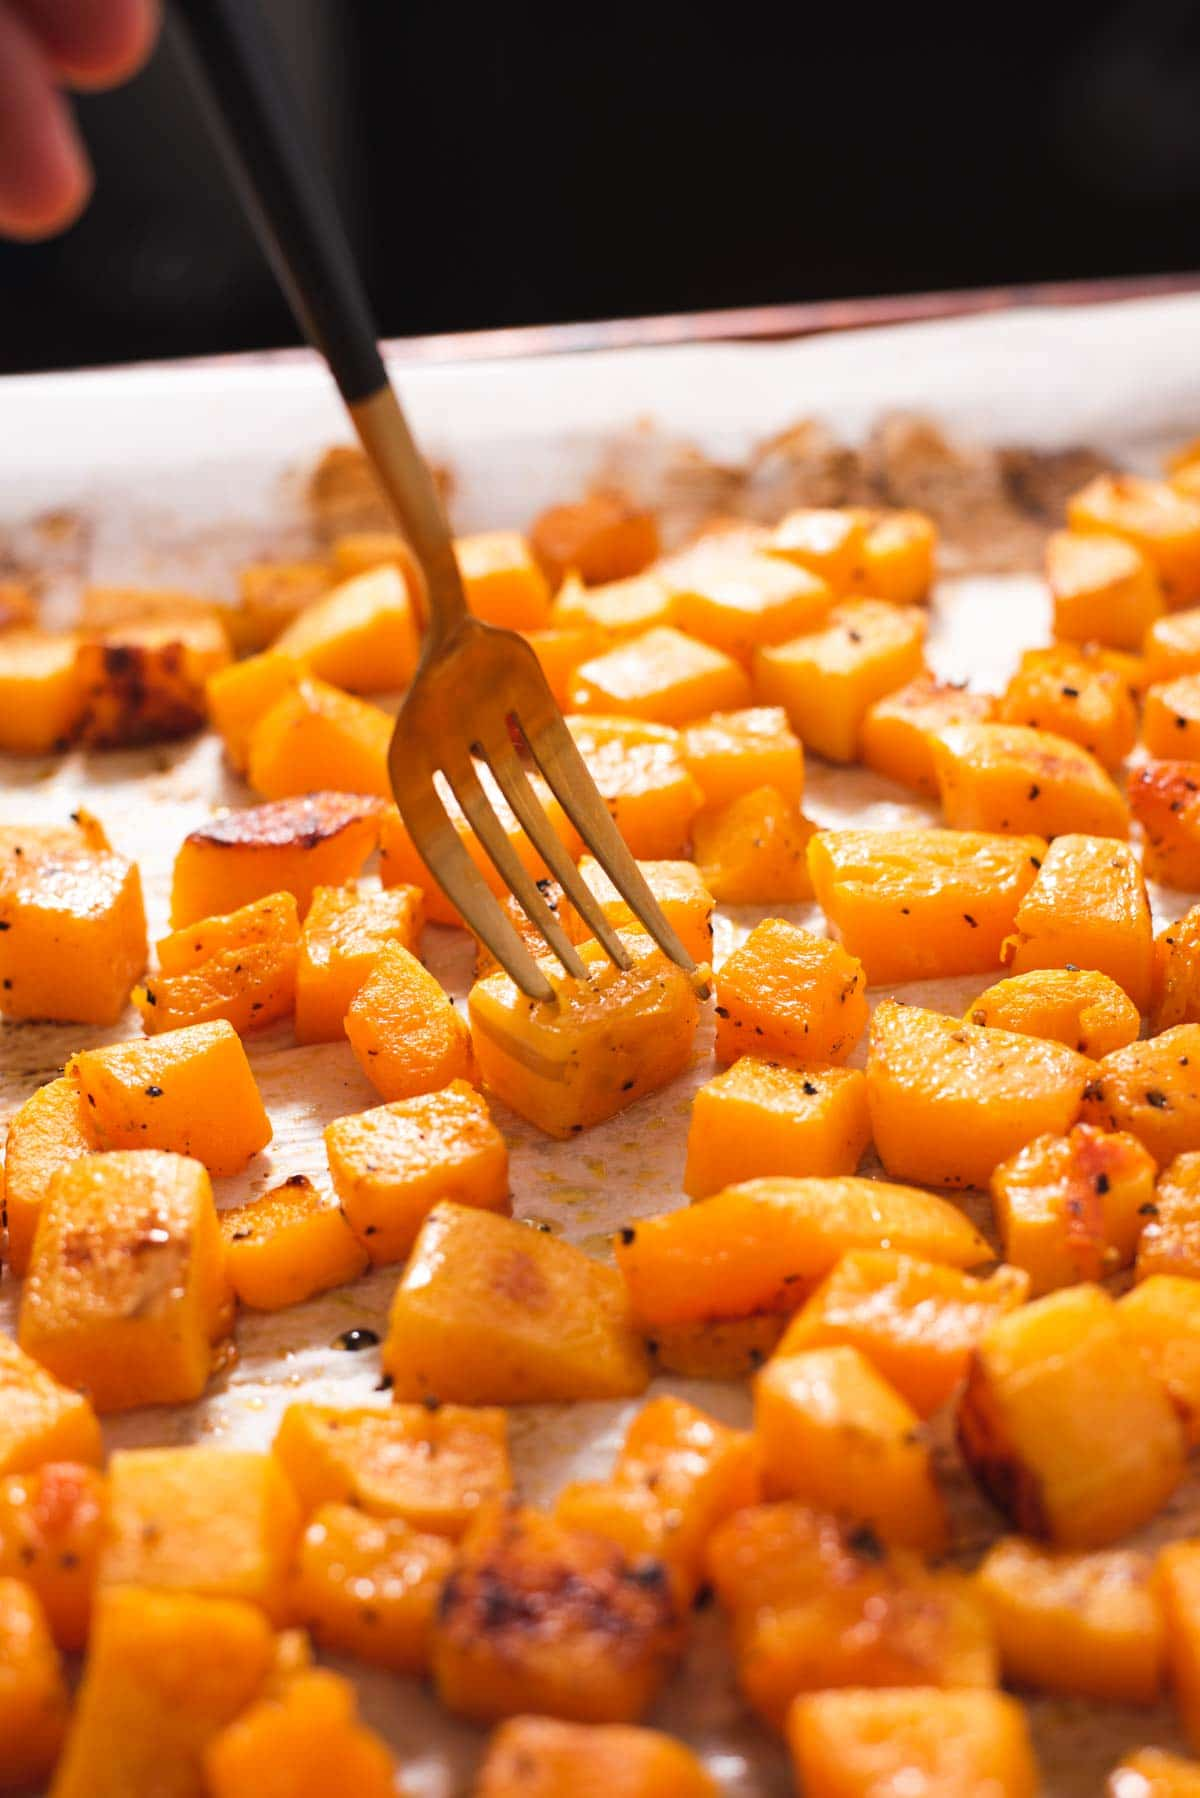 Gold fork piercing a piece of roasted butternut squash next to more squash